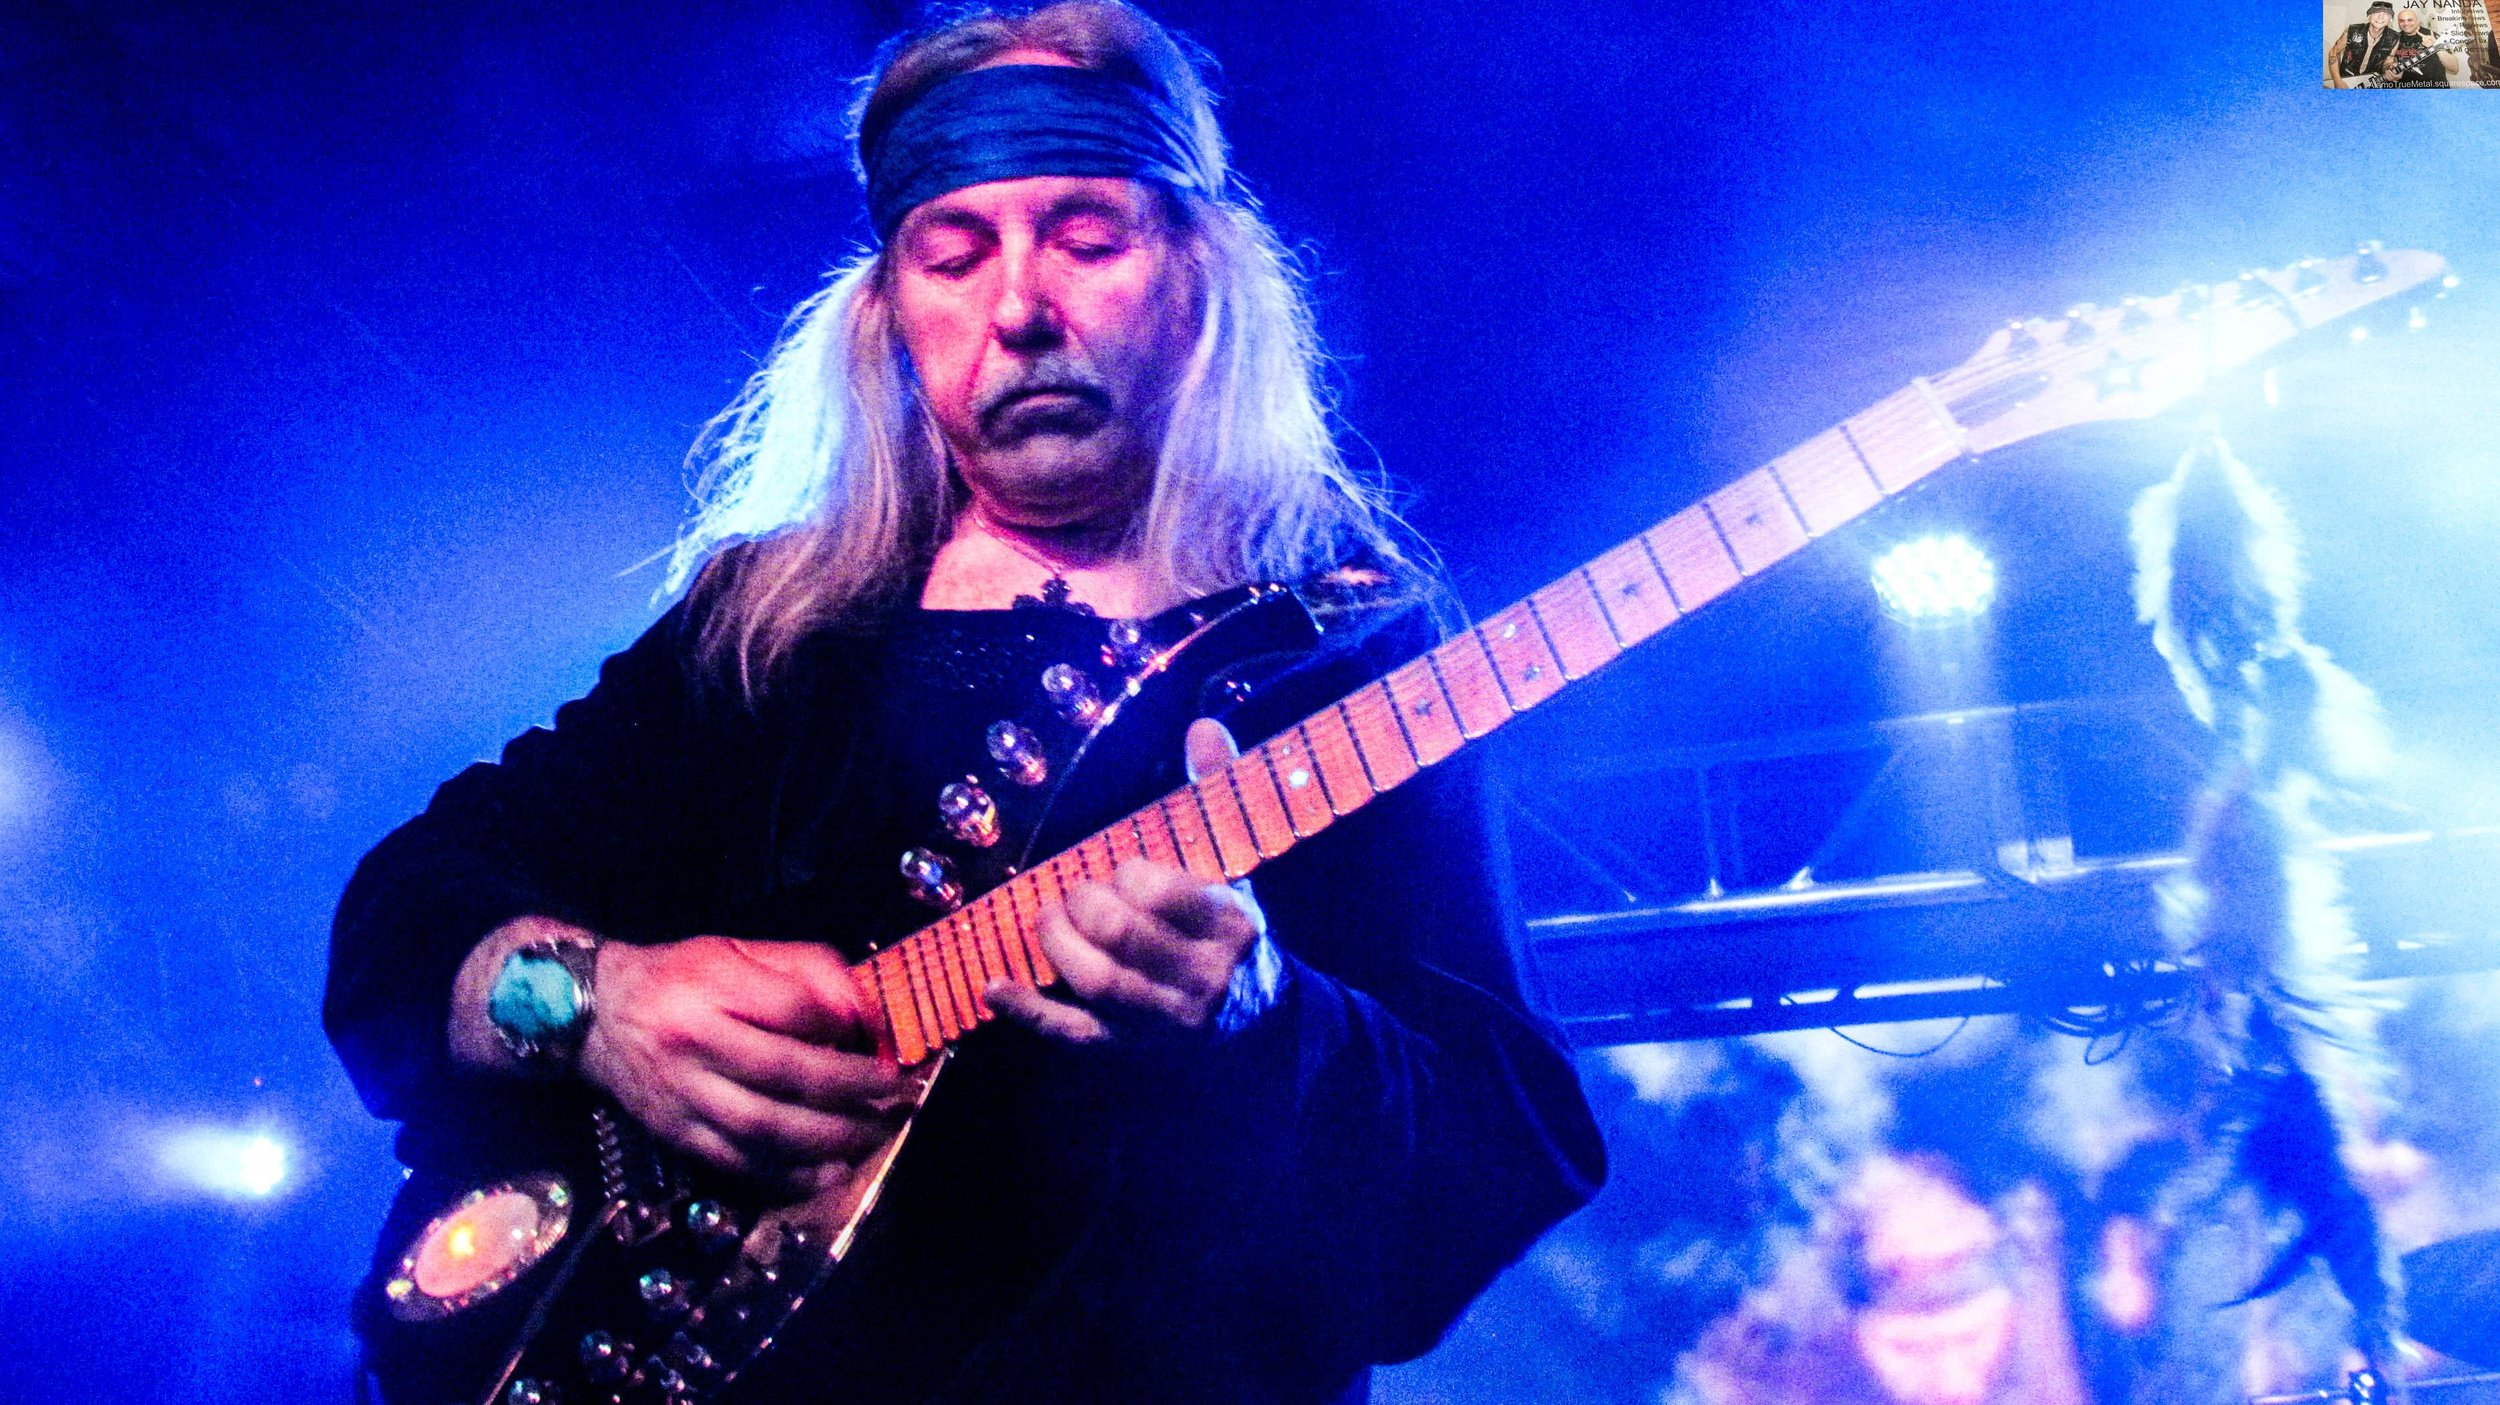 Roth was marking 30 years of his post-Scorpions band Electric Sun, 40 years of live Scorpions album  Tokyo Tapes  and 50 years of the first concert he played in 1968.